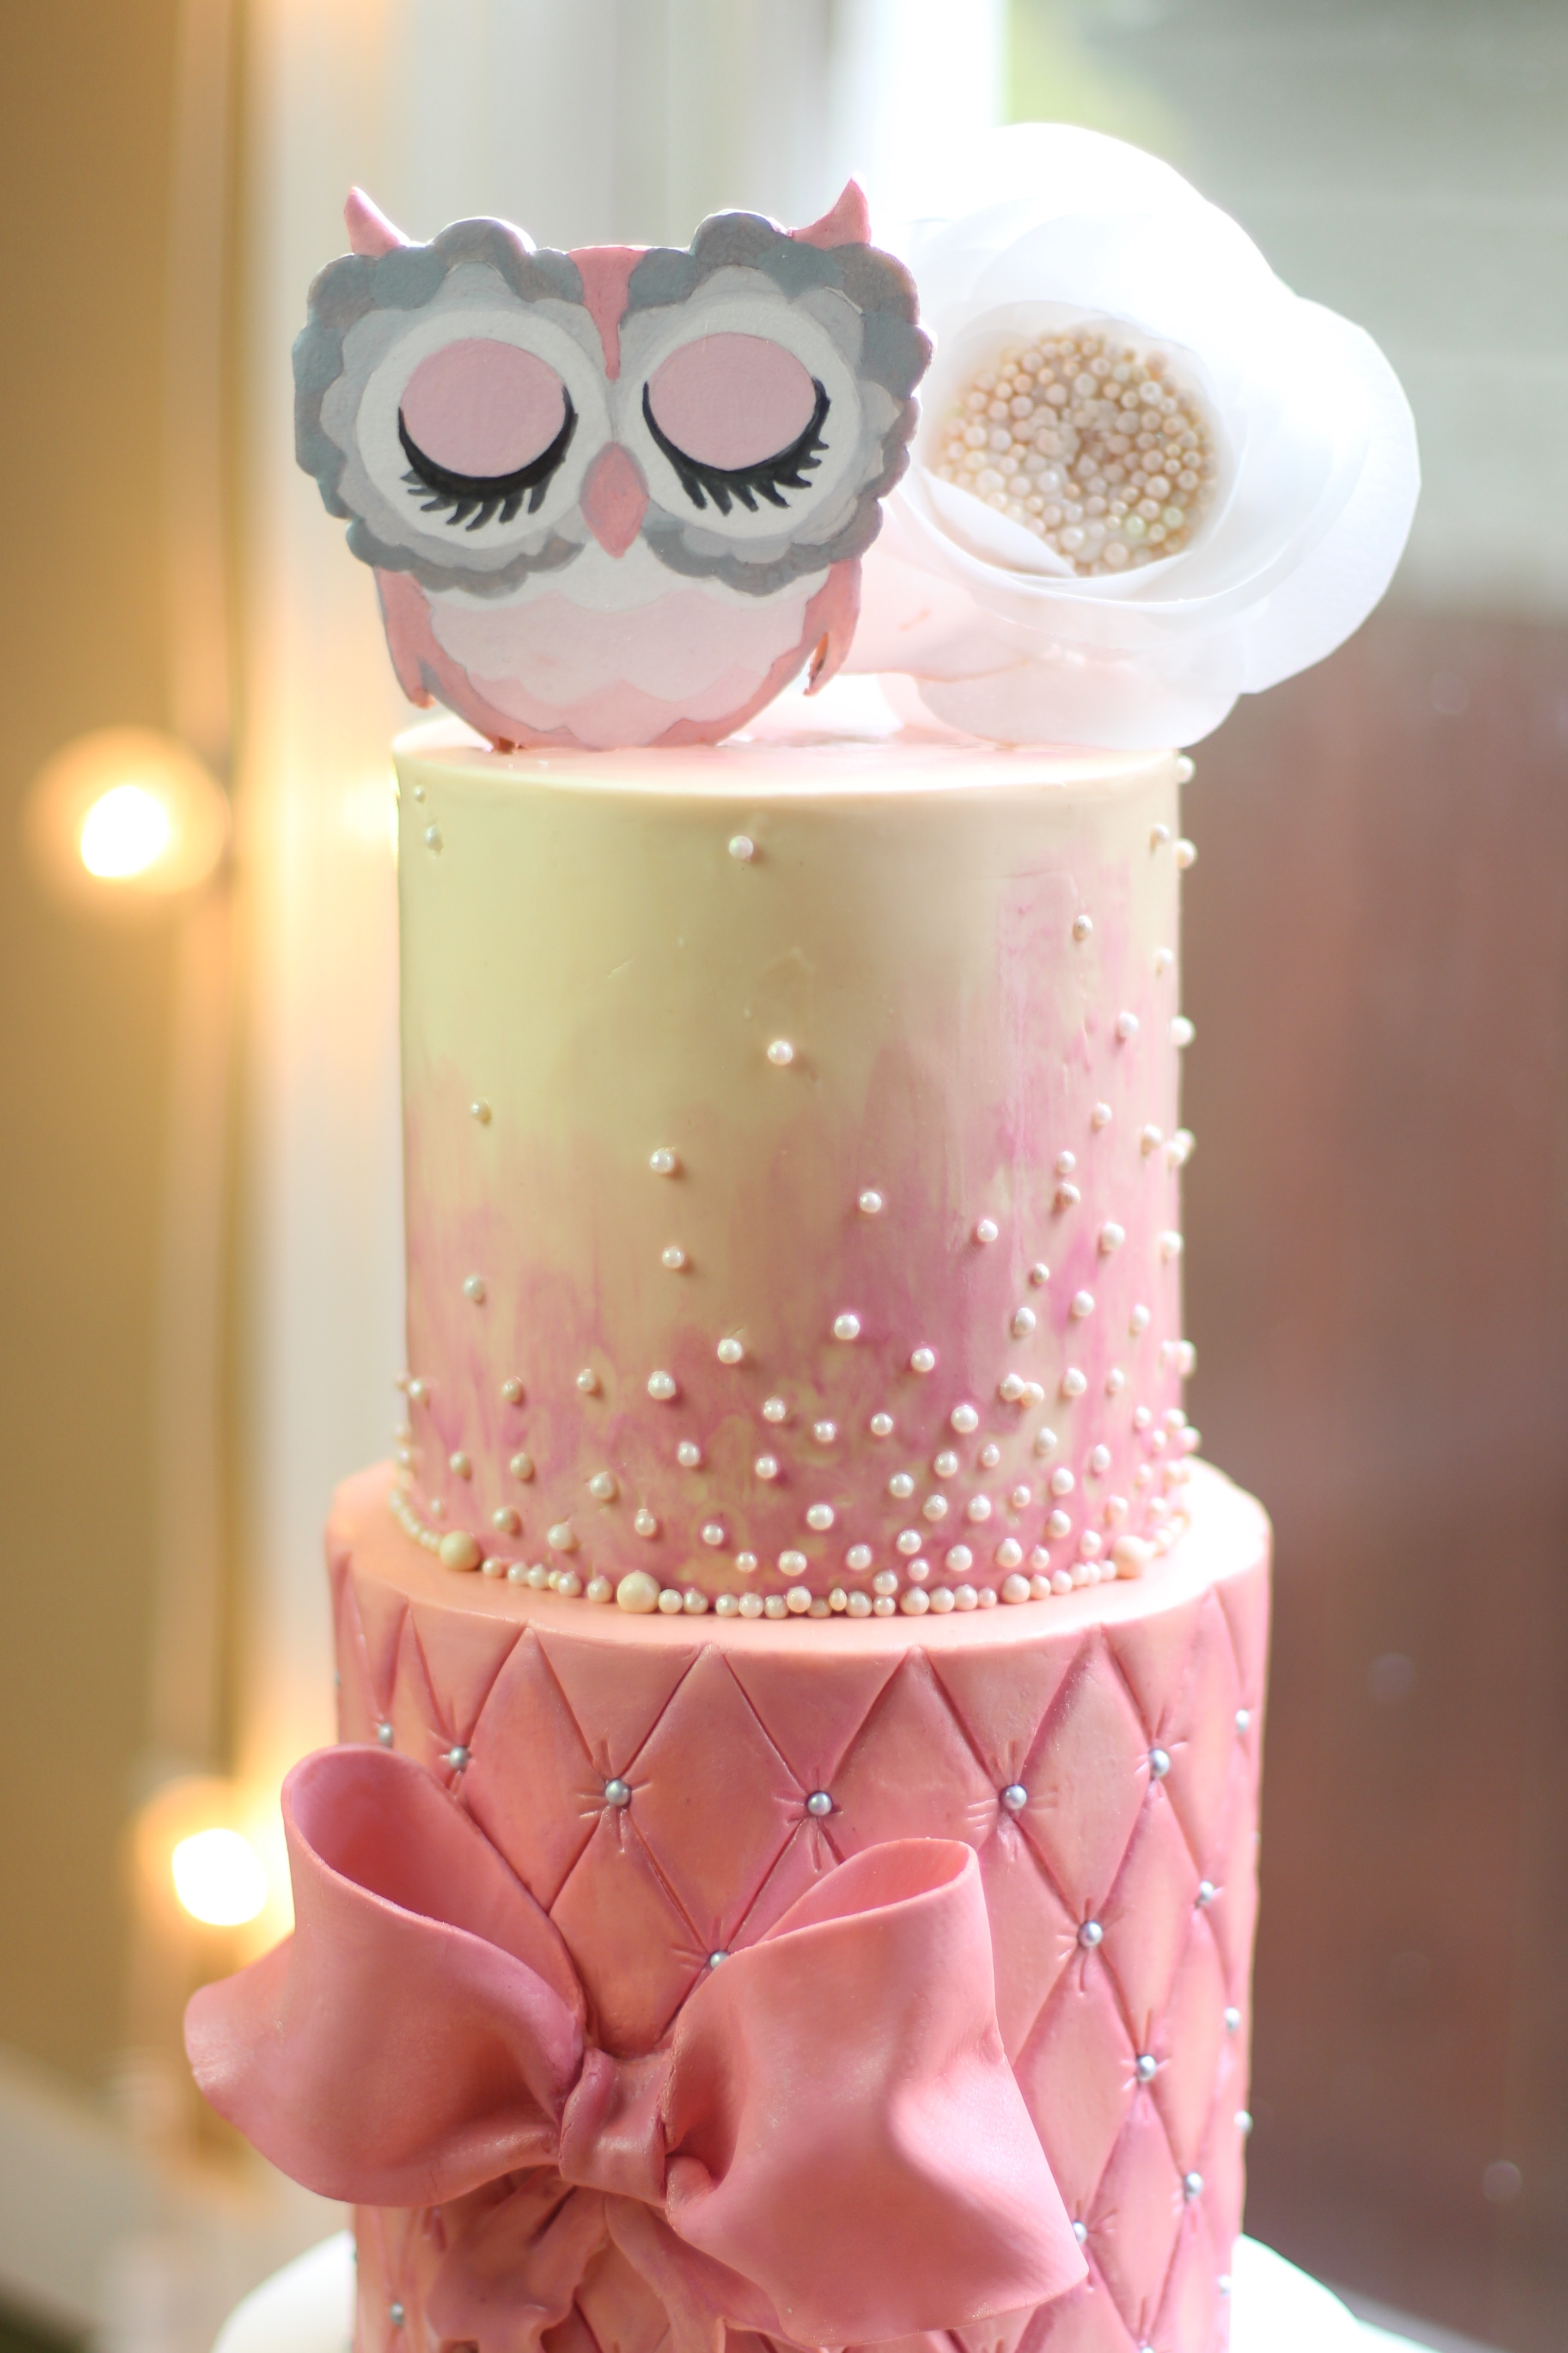 Pretty In Pink Baby Shower Cake. Red Velvet With Cream Cheese Buttercream.  8 In, 6in And 5 In Tiers. Hand Painted Owl Topper With Wafer Paper Flower.